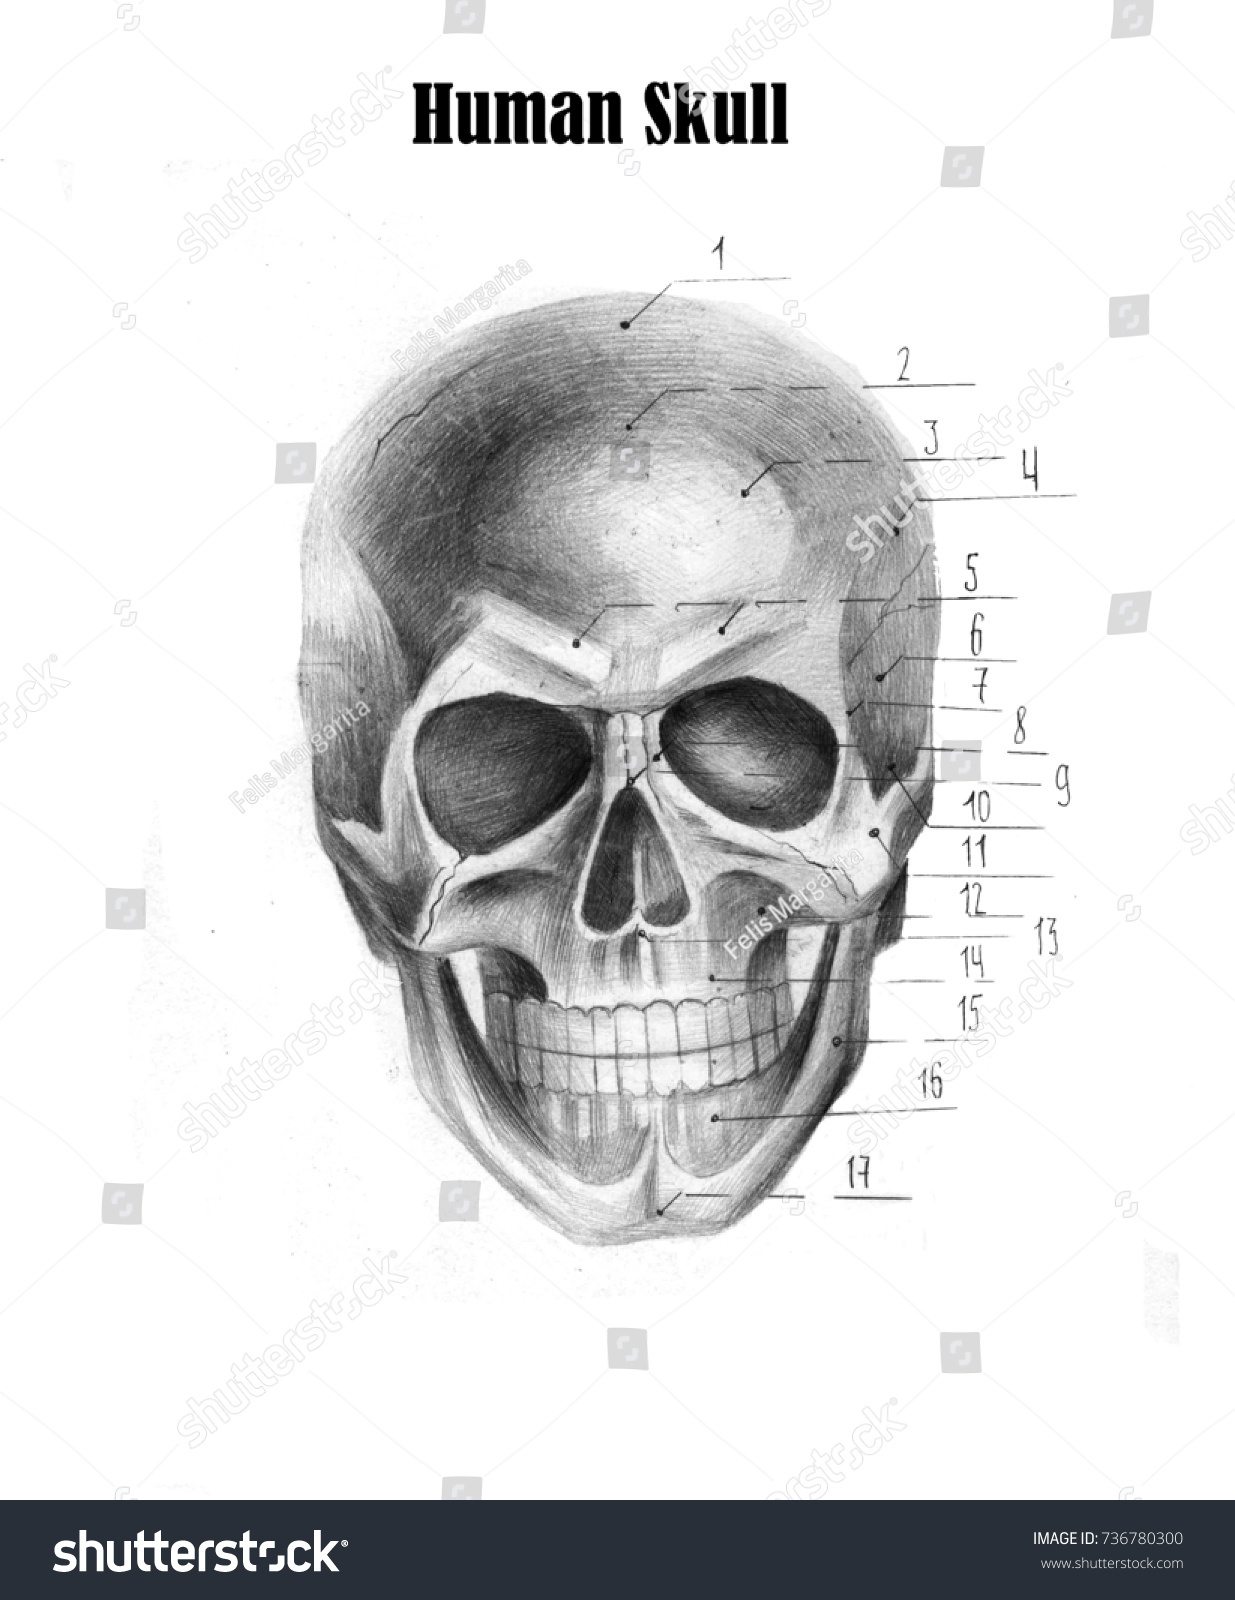 Human Skull Anatomy Medical Students Stock Illustration 736780300 ...